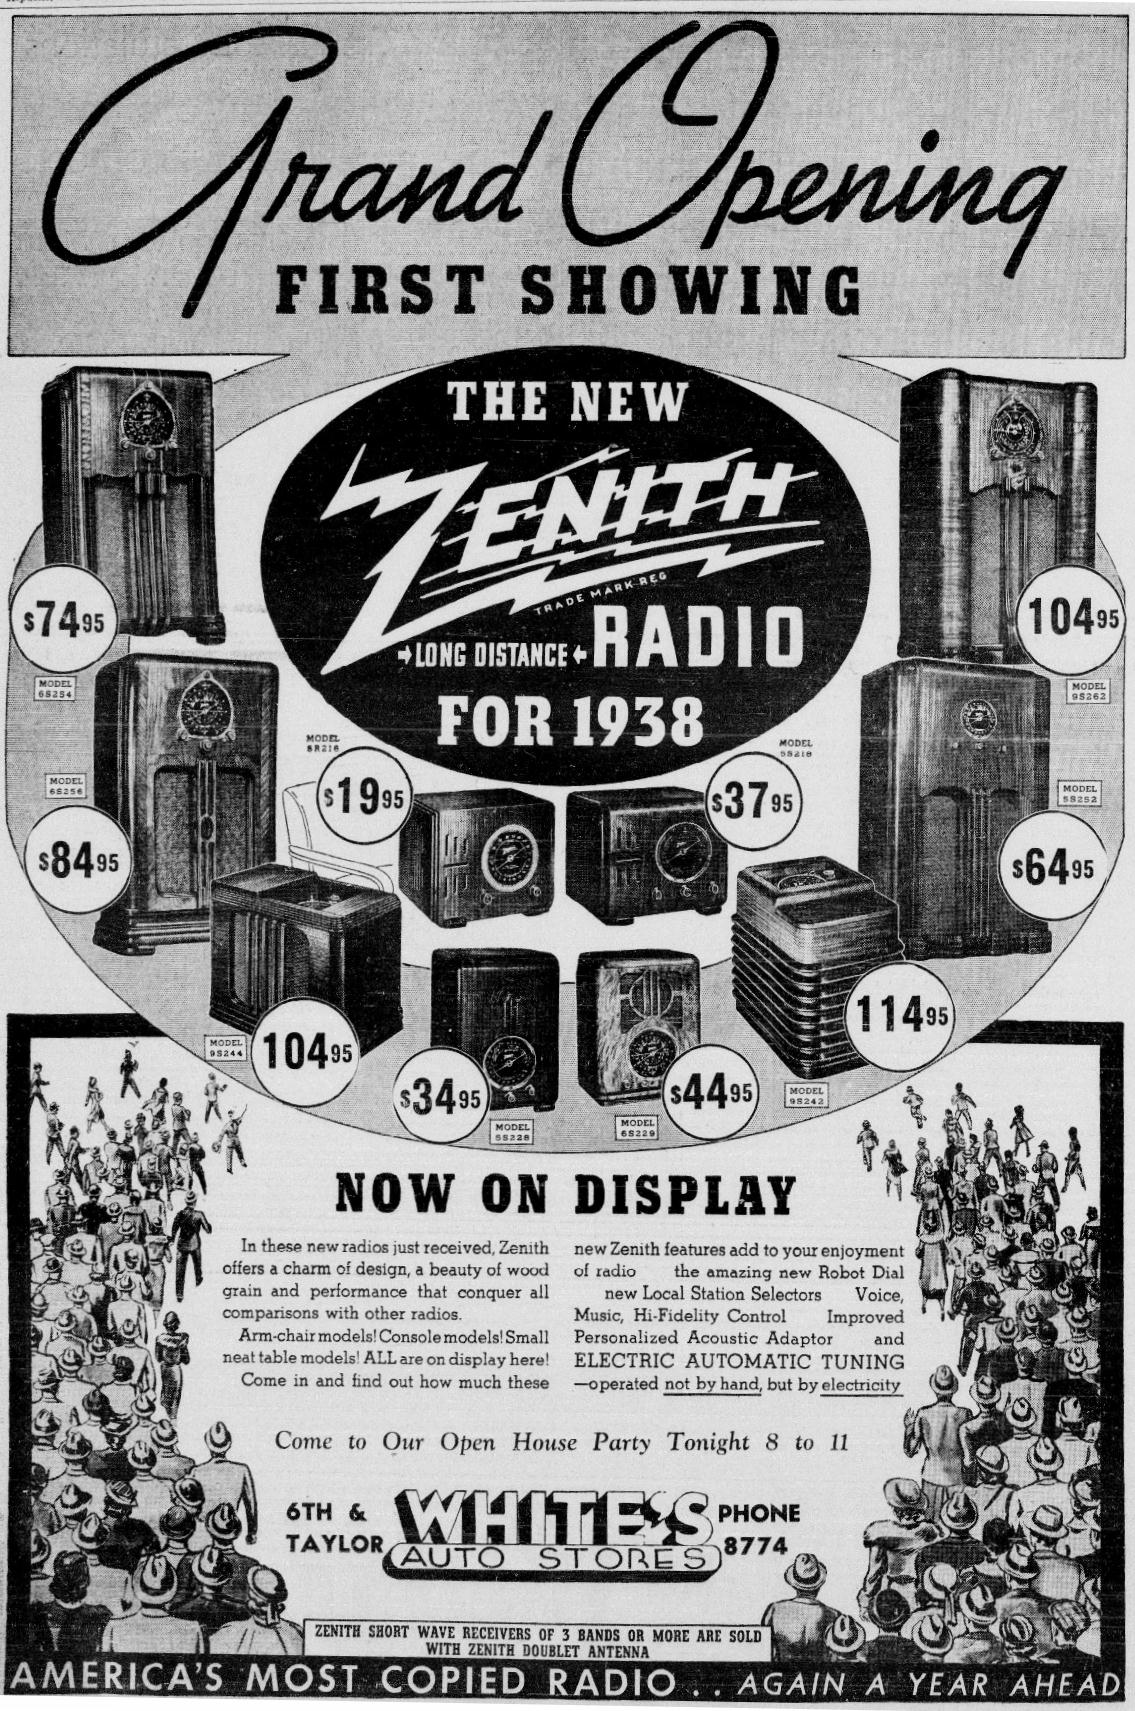 Zenith Model 6s254 Console Radio 1938. Pare For Tone Beauty Performance. Wiring. Zenith Tube Radio Schematics 1938 At Scoala.co